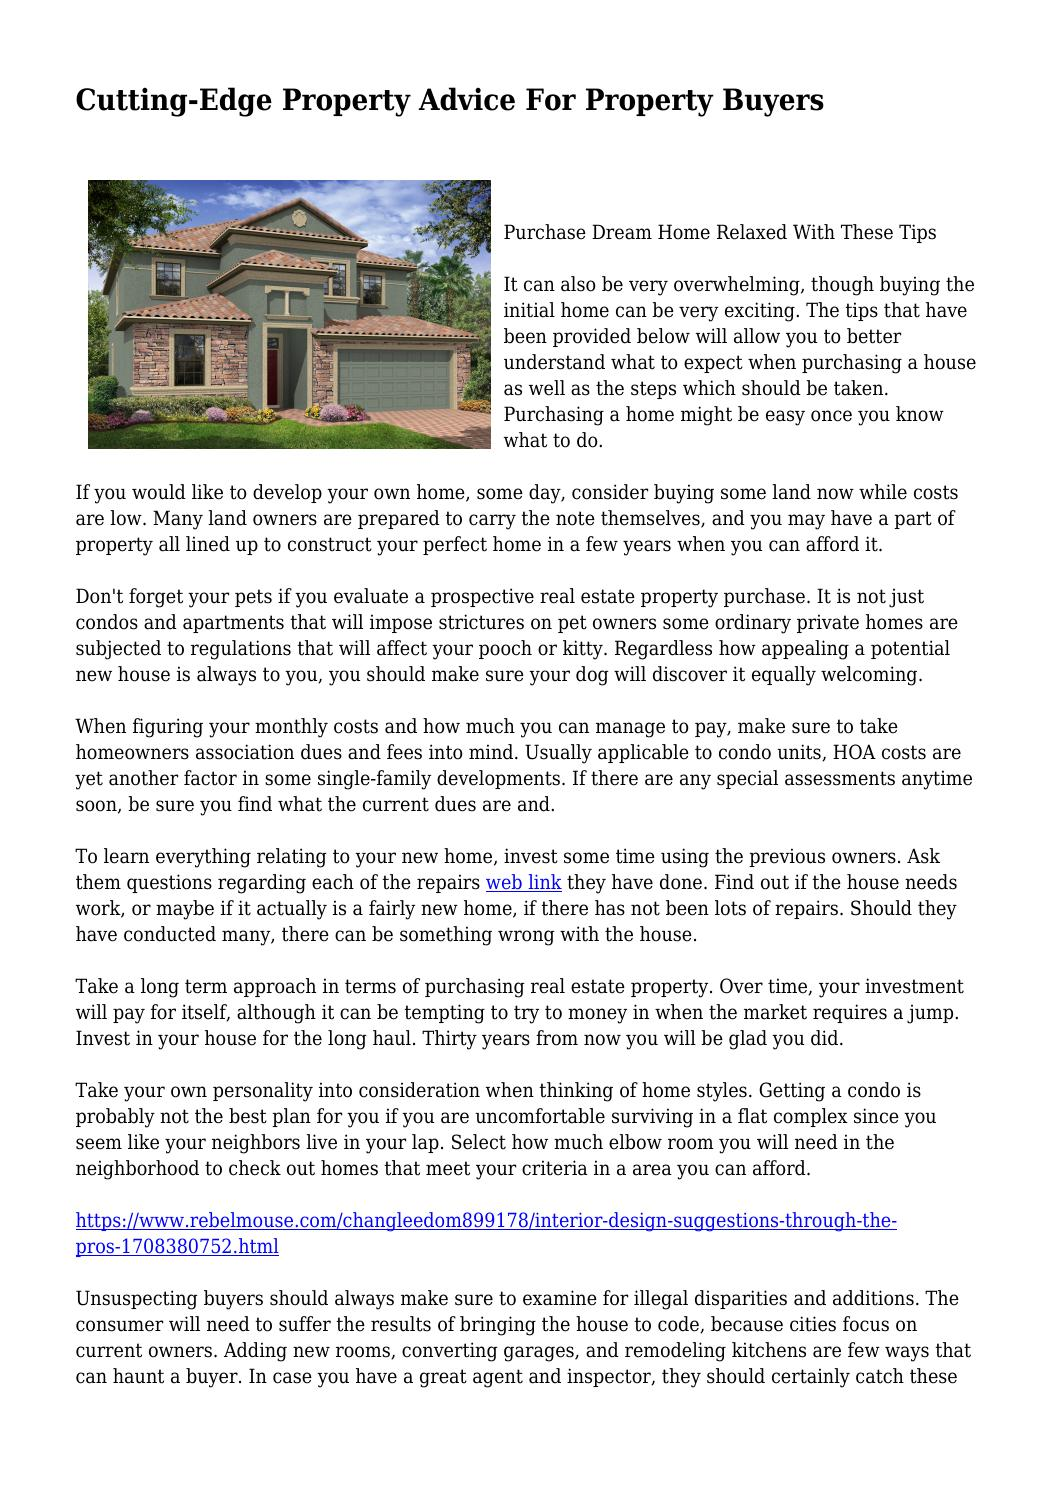 cutting-edge property advice for property buyers by